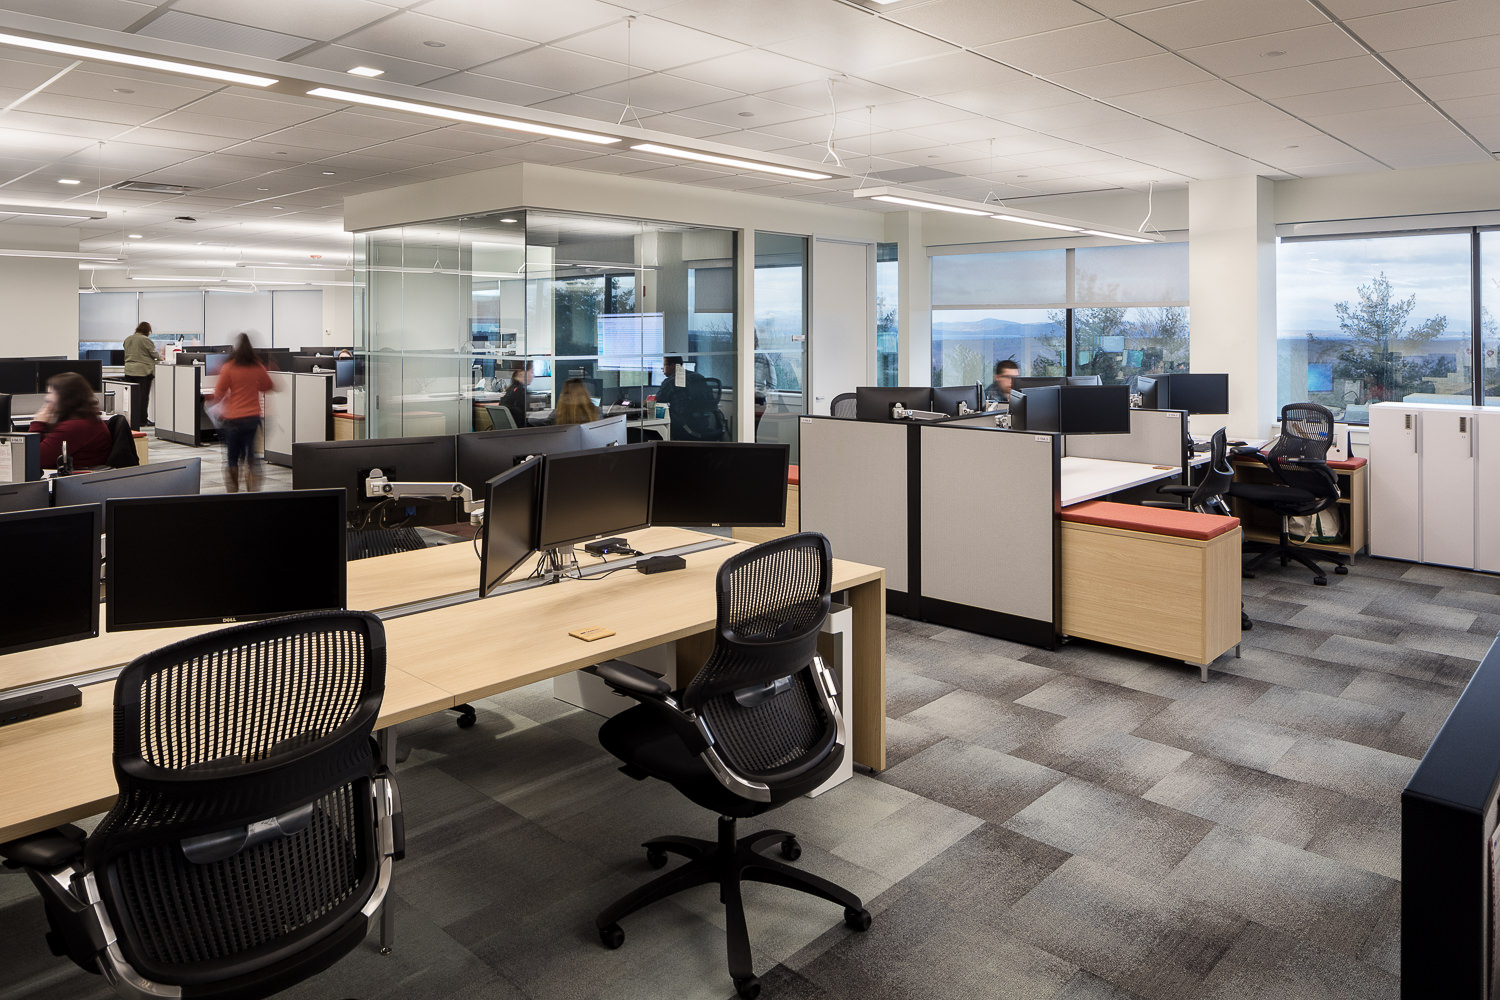 An open concept flex office space with workstations for employees at an insurance firm.